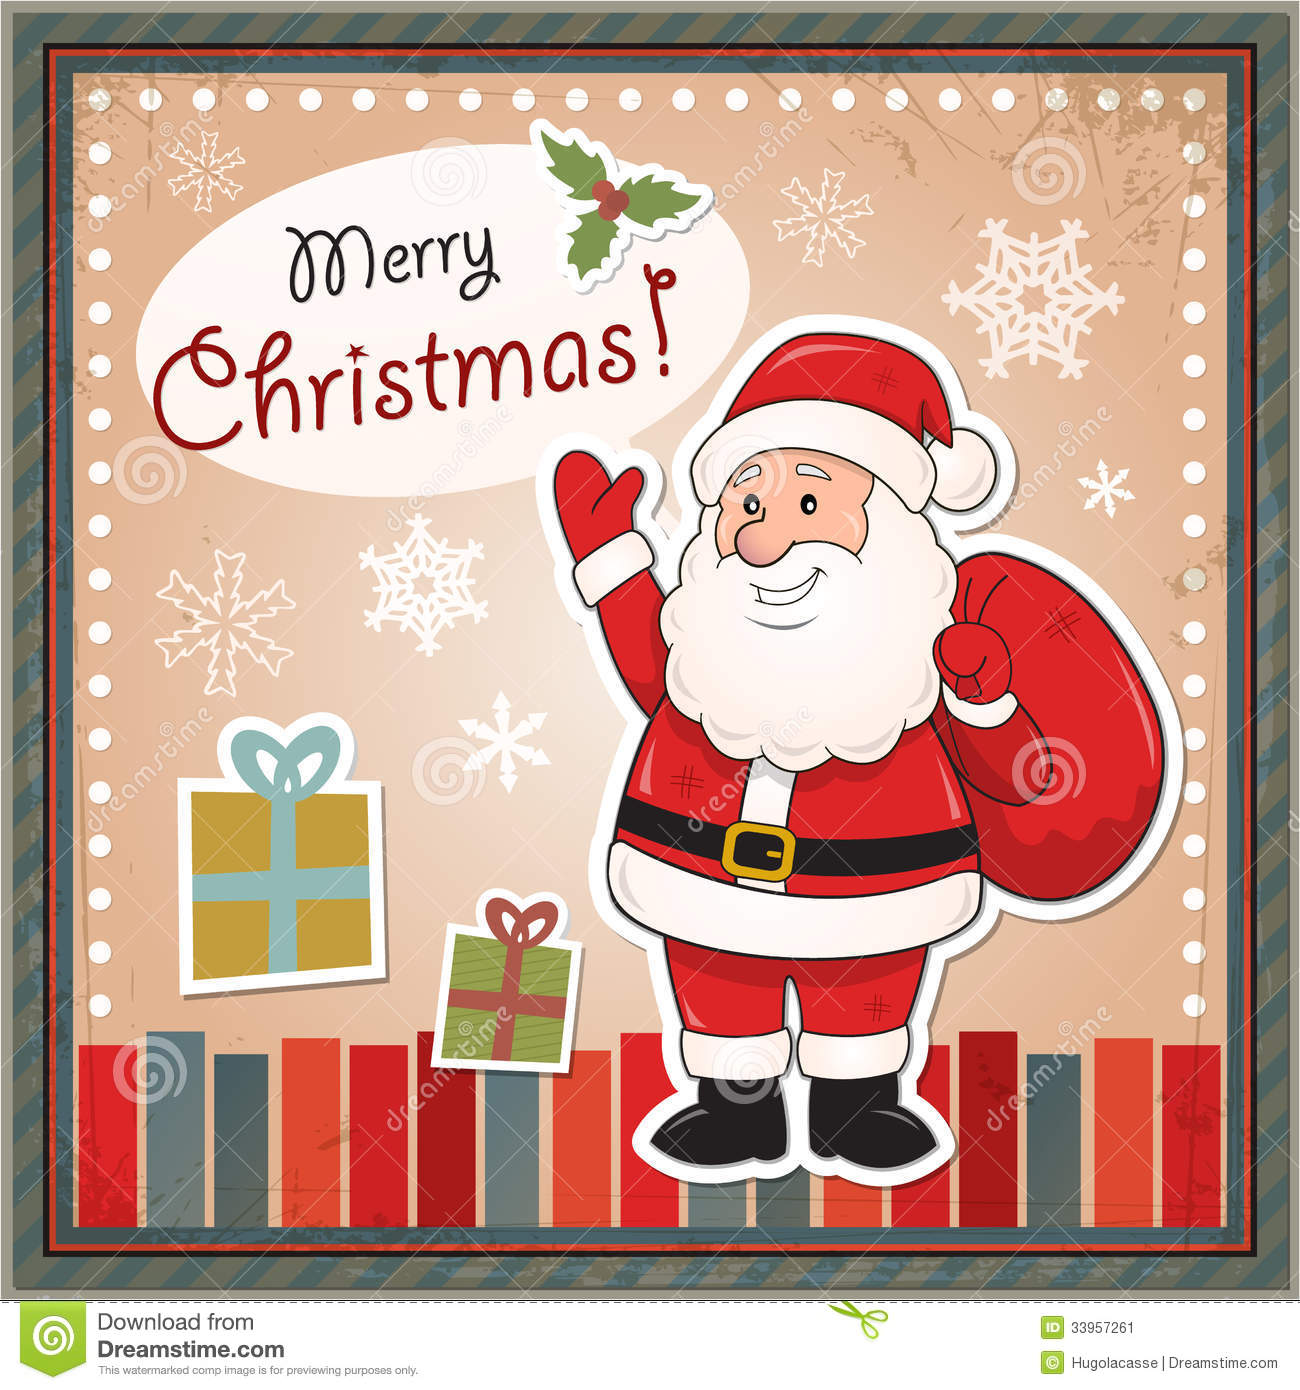 Vintage Christmas Card With Santa Claus Stock Vector Illustration